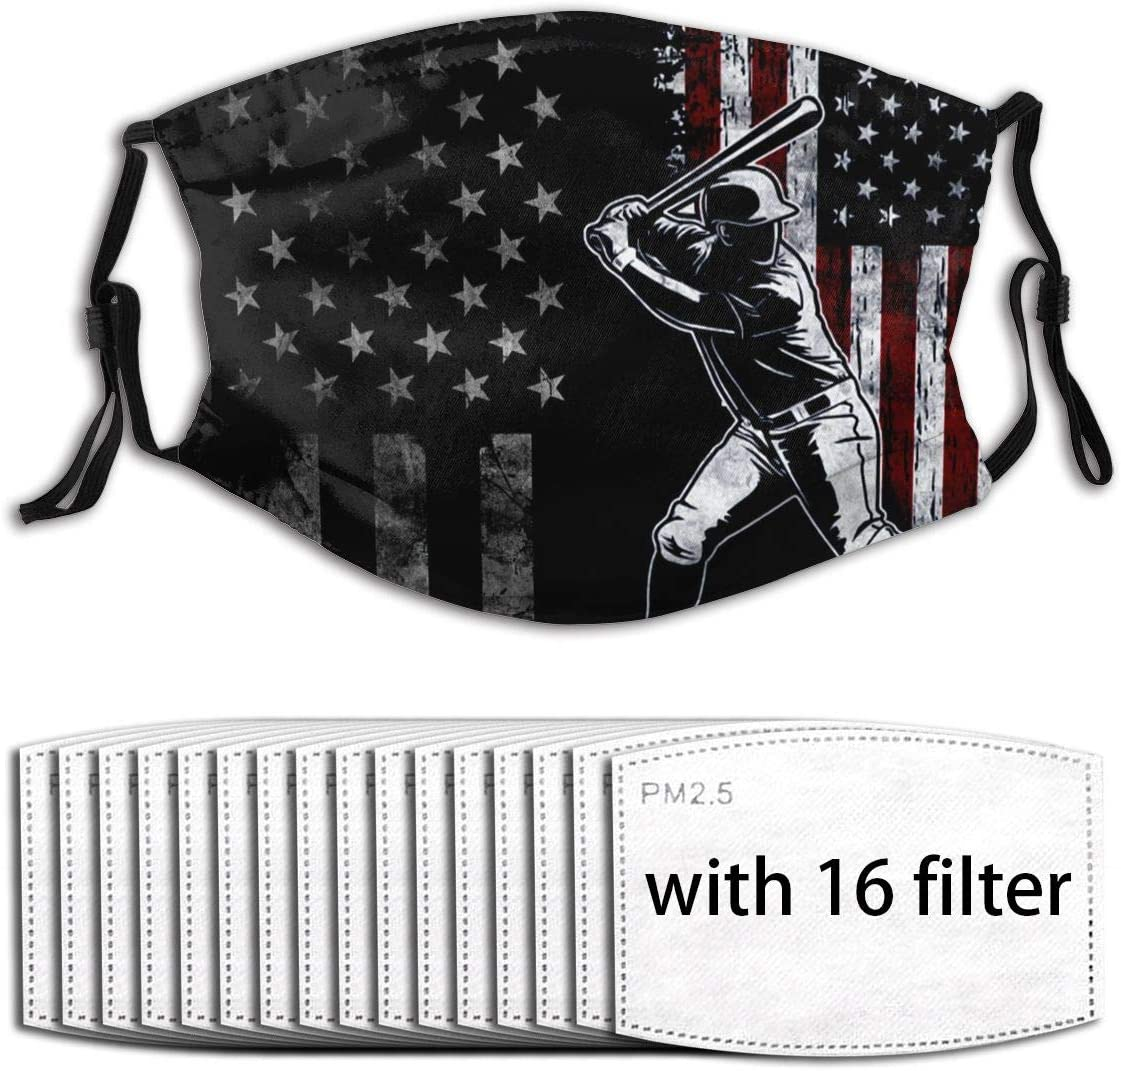 UV Protection Reusable Mouth Guard Insert Filters, Retro Black American Flag Distressed Flag Batting Baseball Batter Anti Air Dust Filters Protection Cover for Hiking Camping - Adjustable Ear Loops: Sports & Outdoors